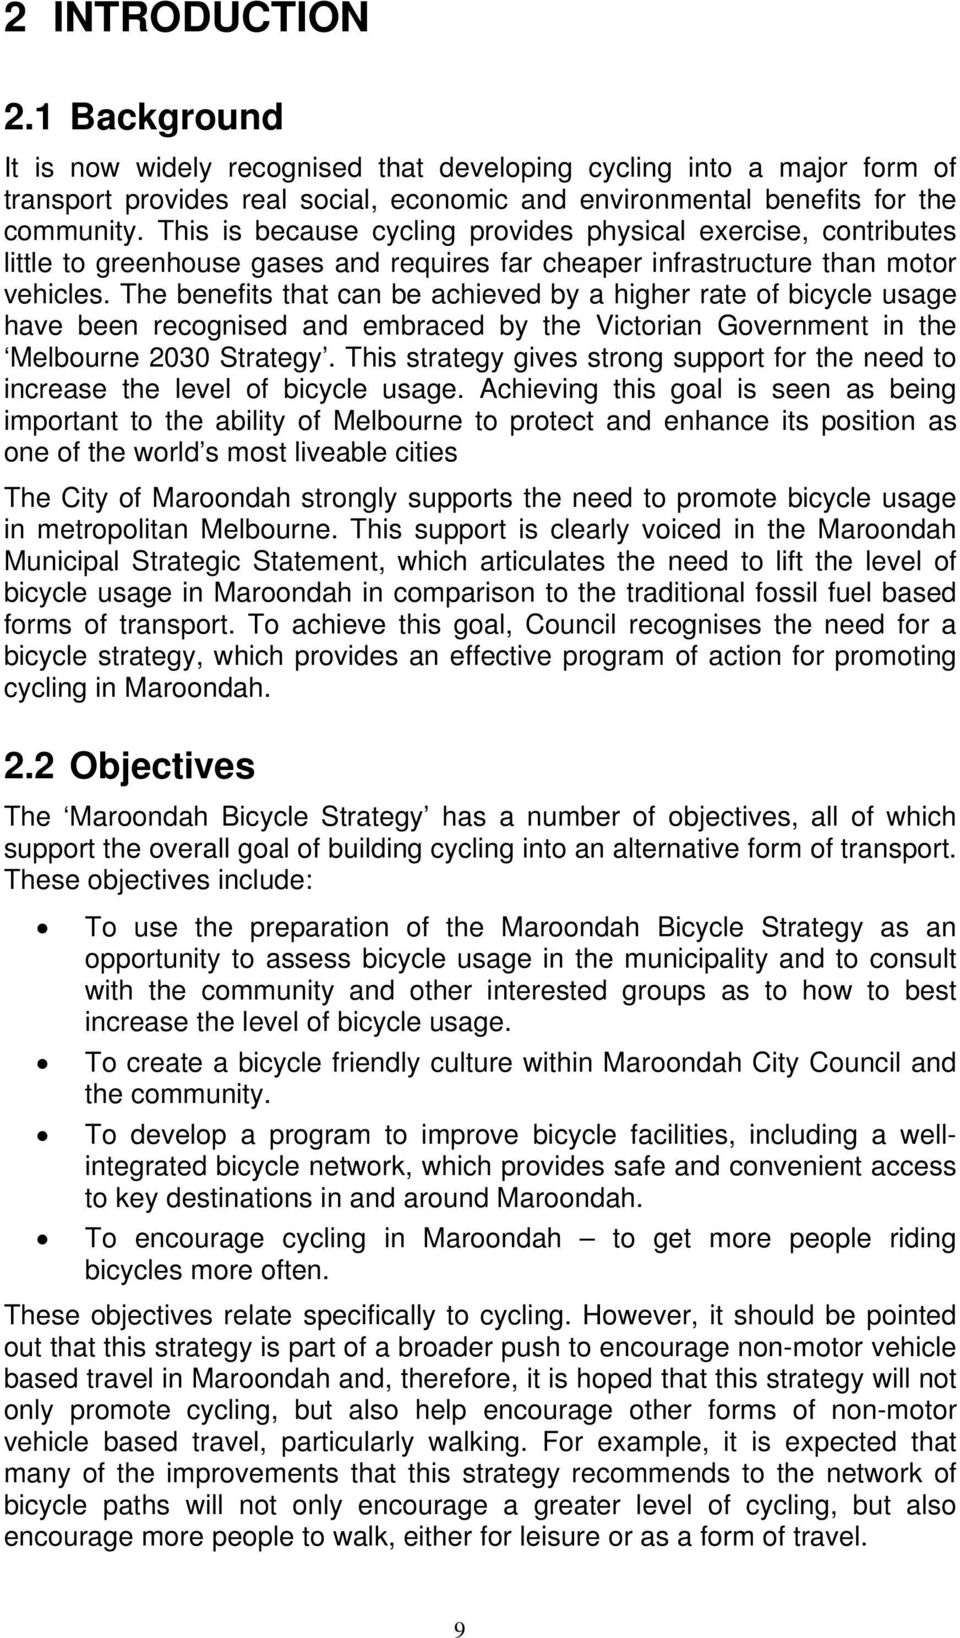 The benefits that can be achieved by a higher rate of bicycle usage have been recognised and embraced by the Victorian Government in the Melbourne 2030 Strategy.